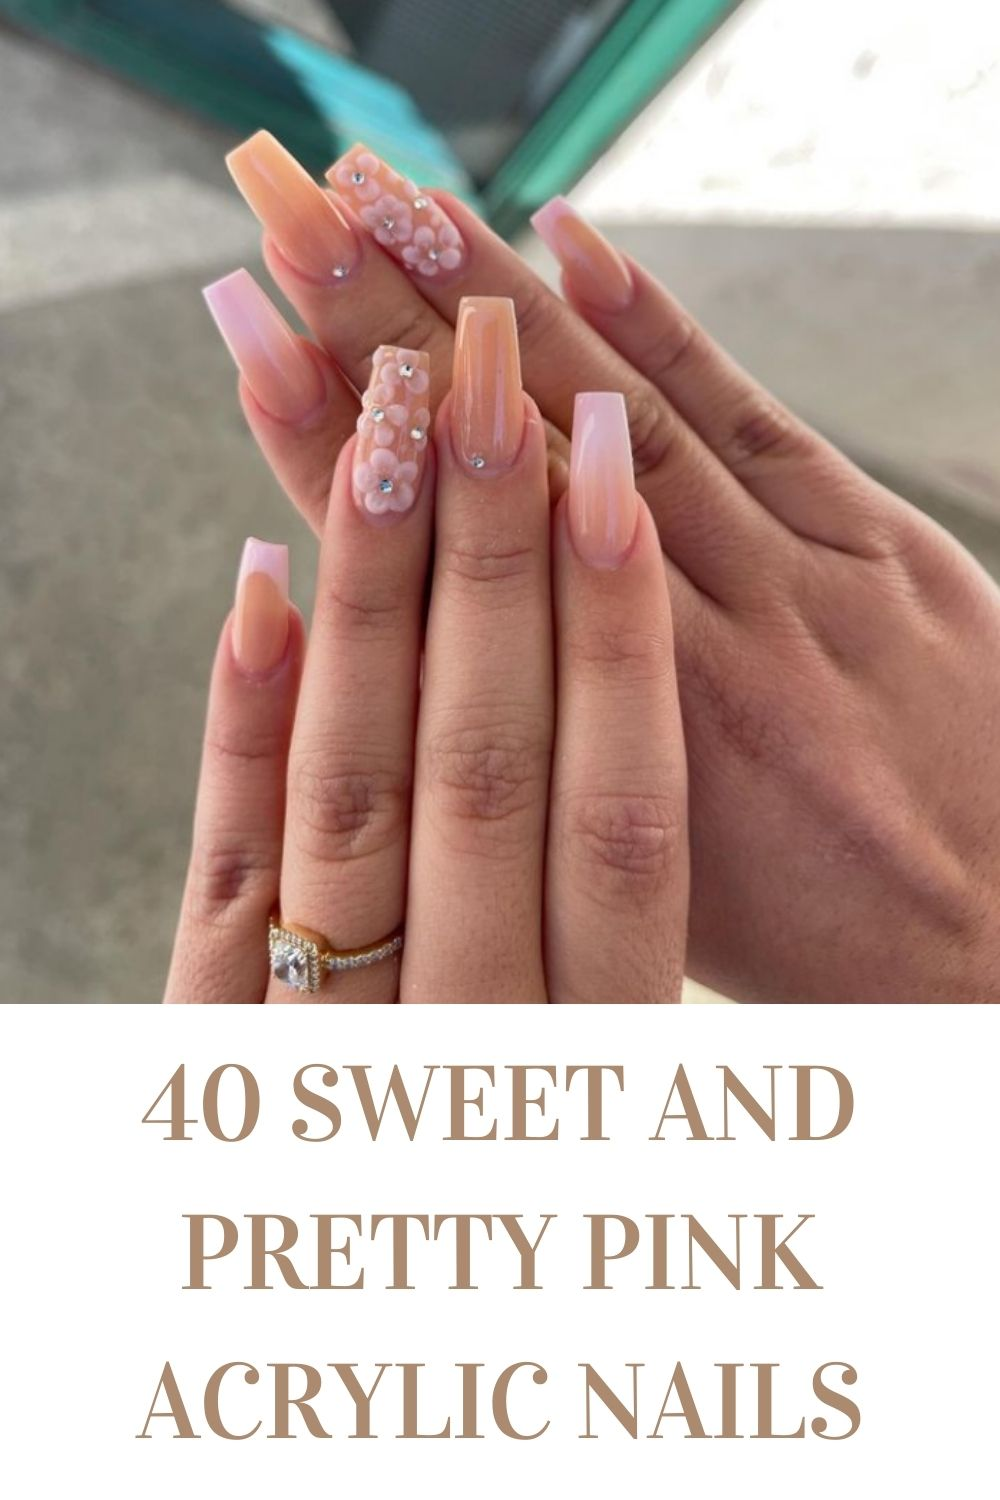 Pink Acrylic Nails: 40 Summer Nail Designs To Copy In 2021!